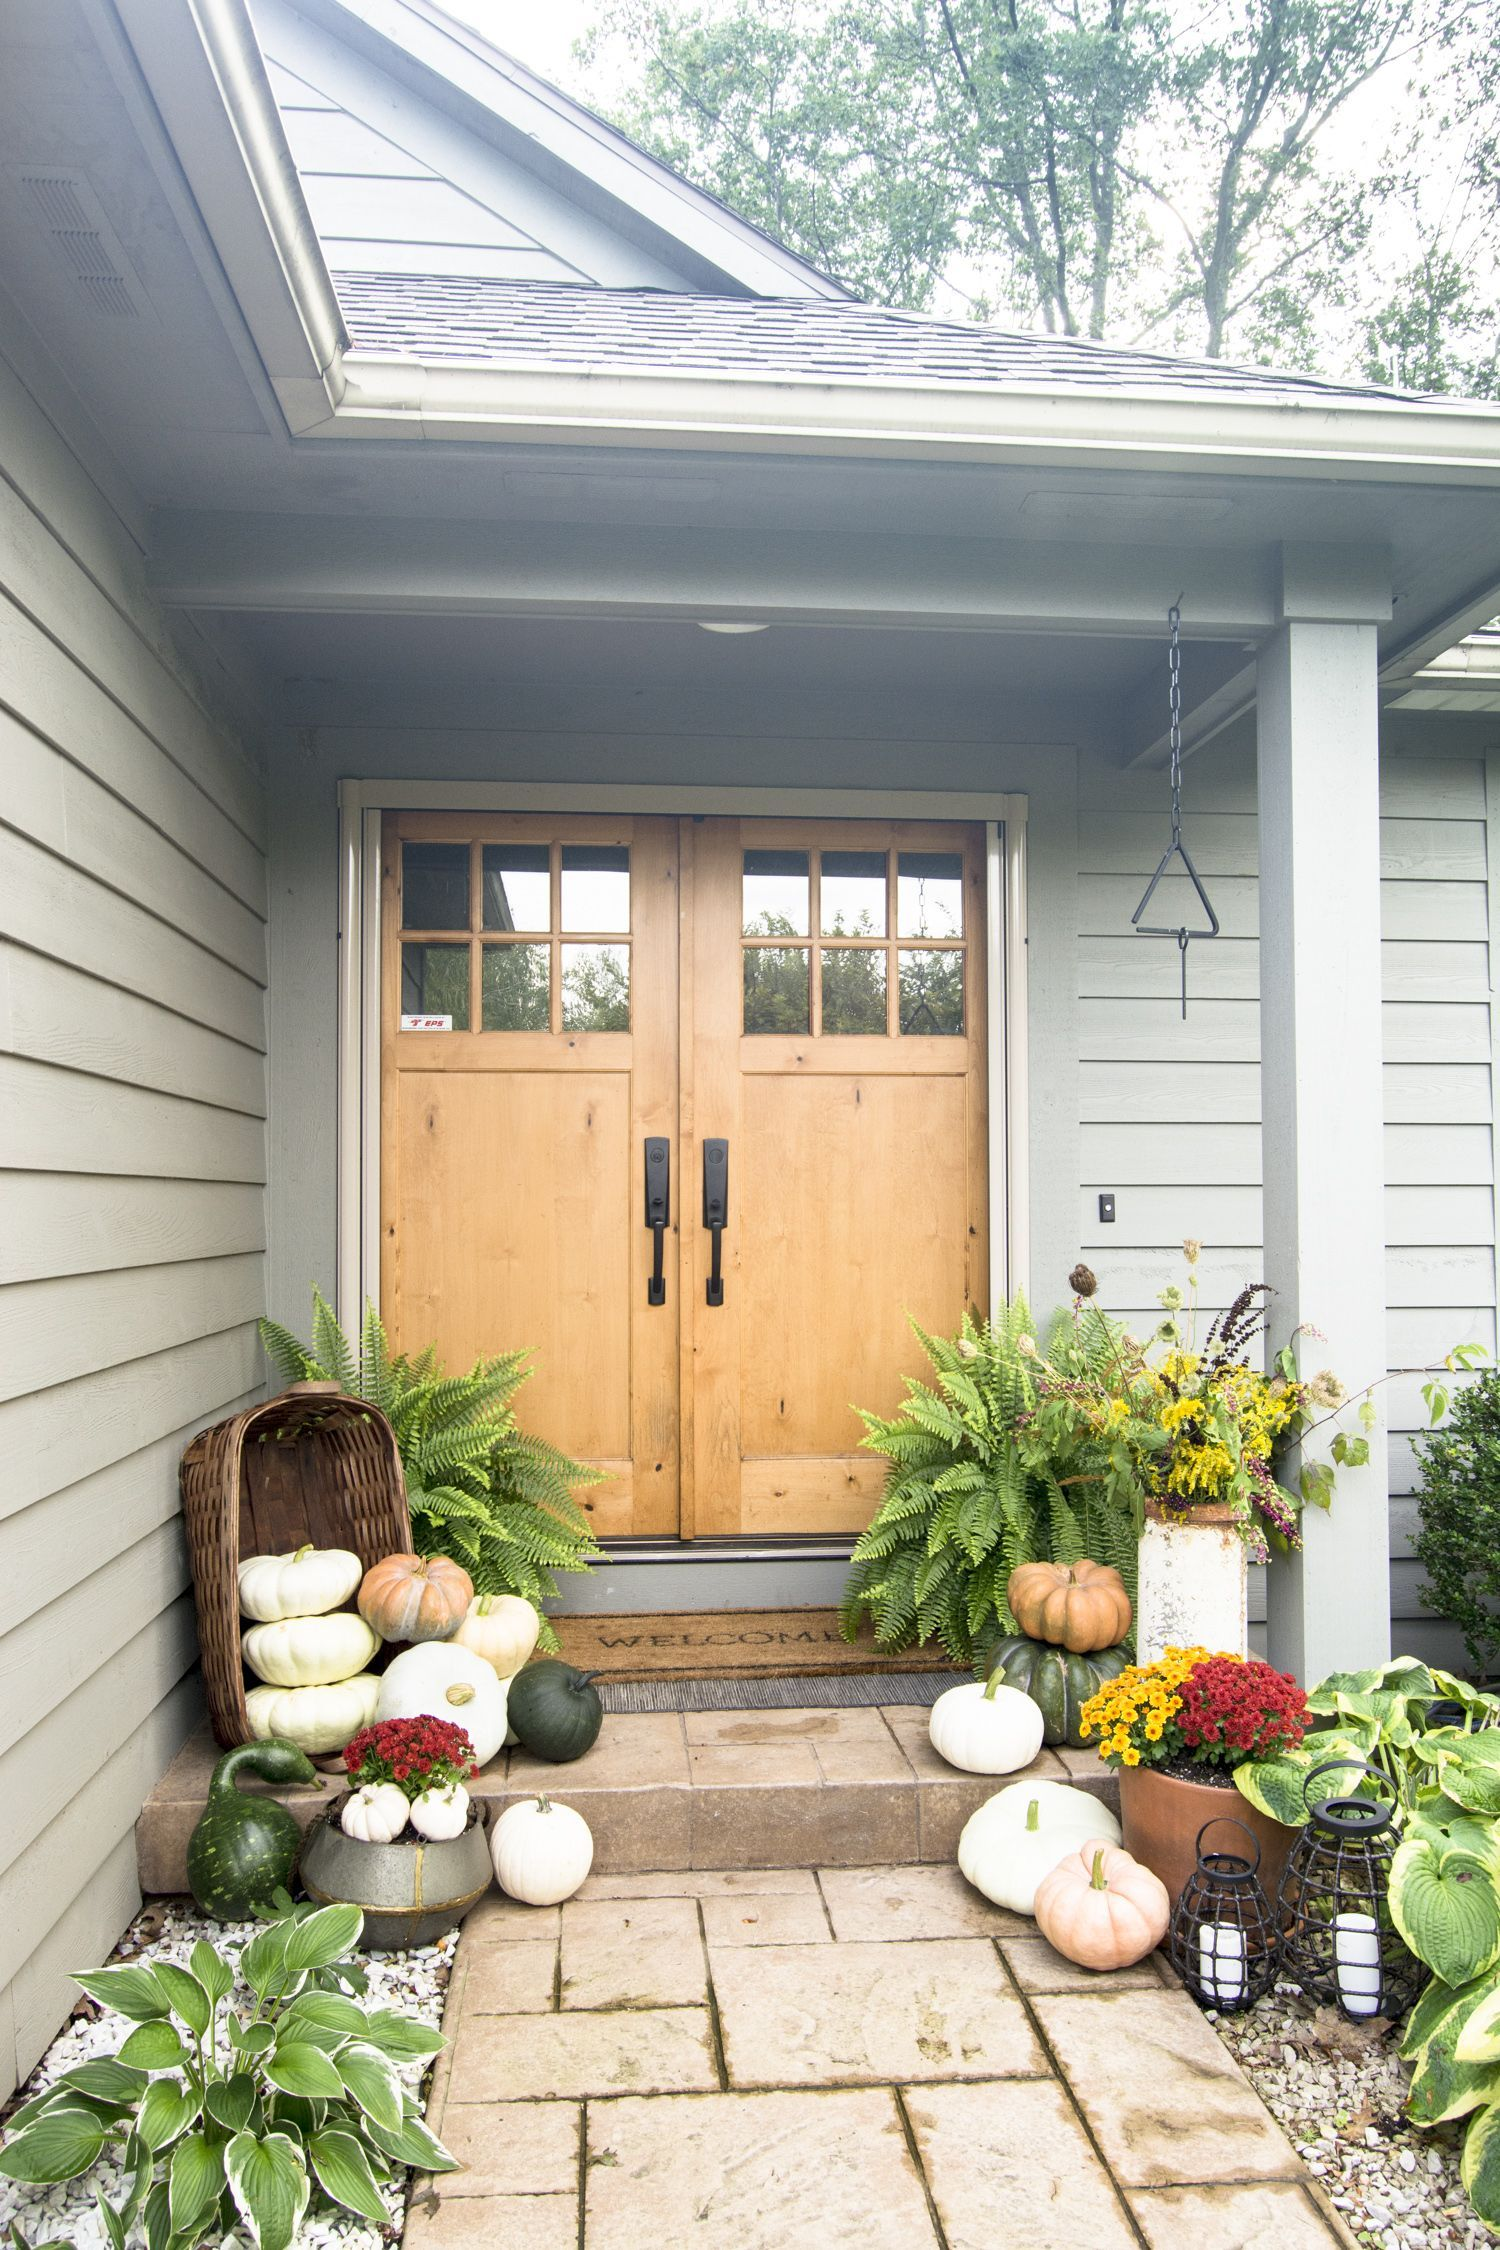 Seasonal front door decor is the simplest way to welcome guests to your home. Learn 3 tips for how to effortlessly style your front door decor for fall. #fromhousetohaven #frontdoor #falldecor #porchdecor